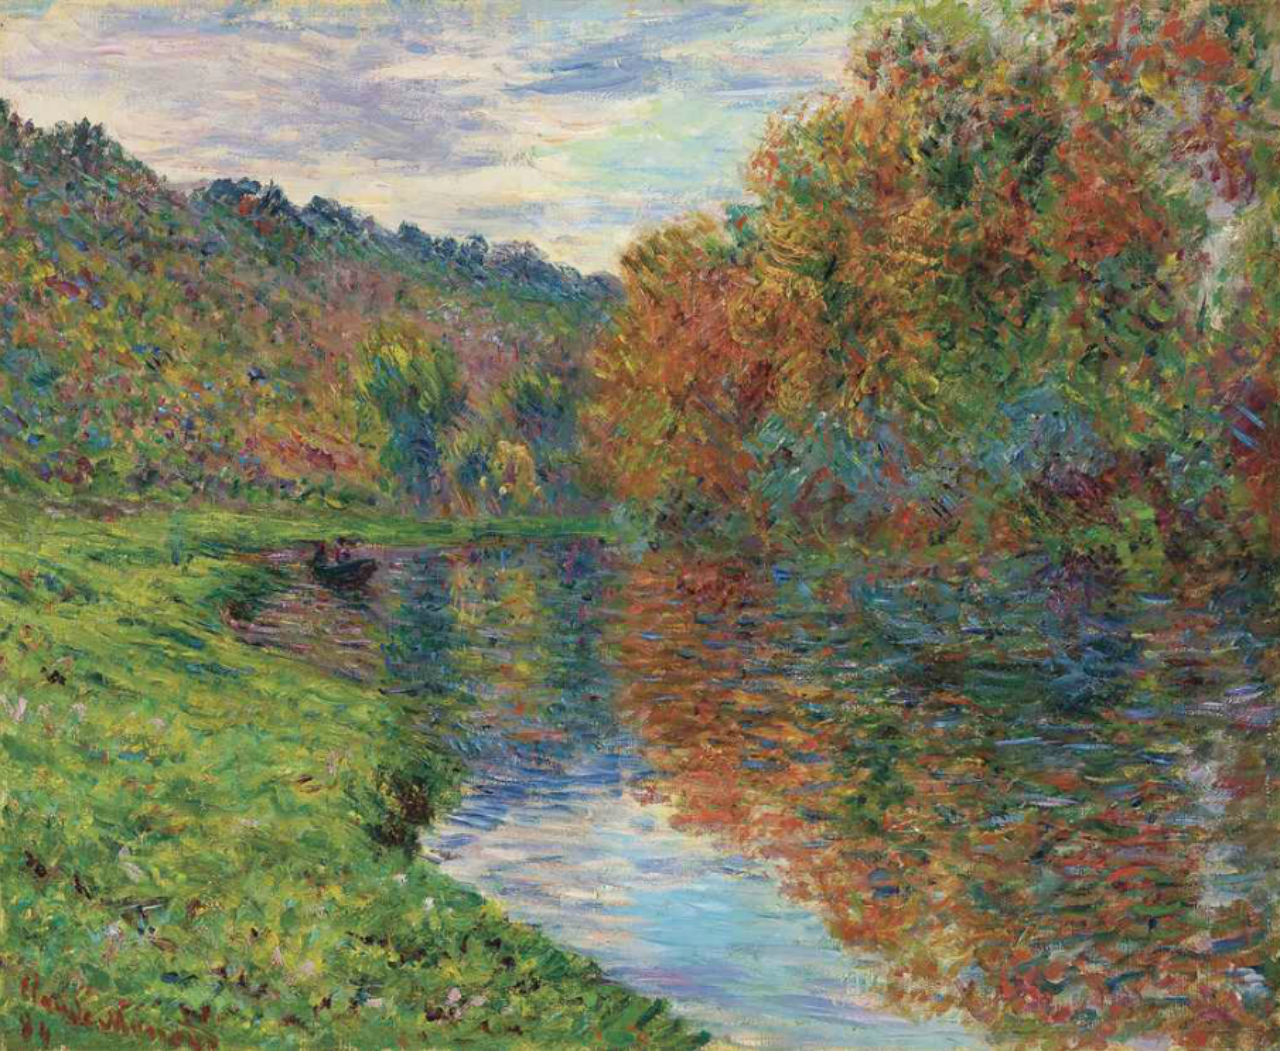 How to Paint Like Monet